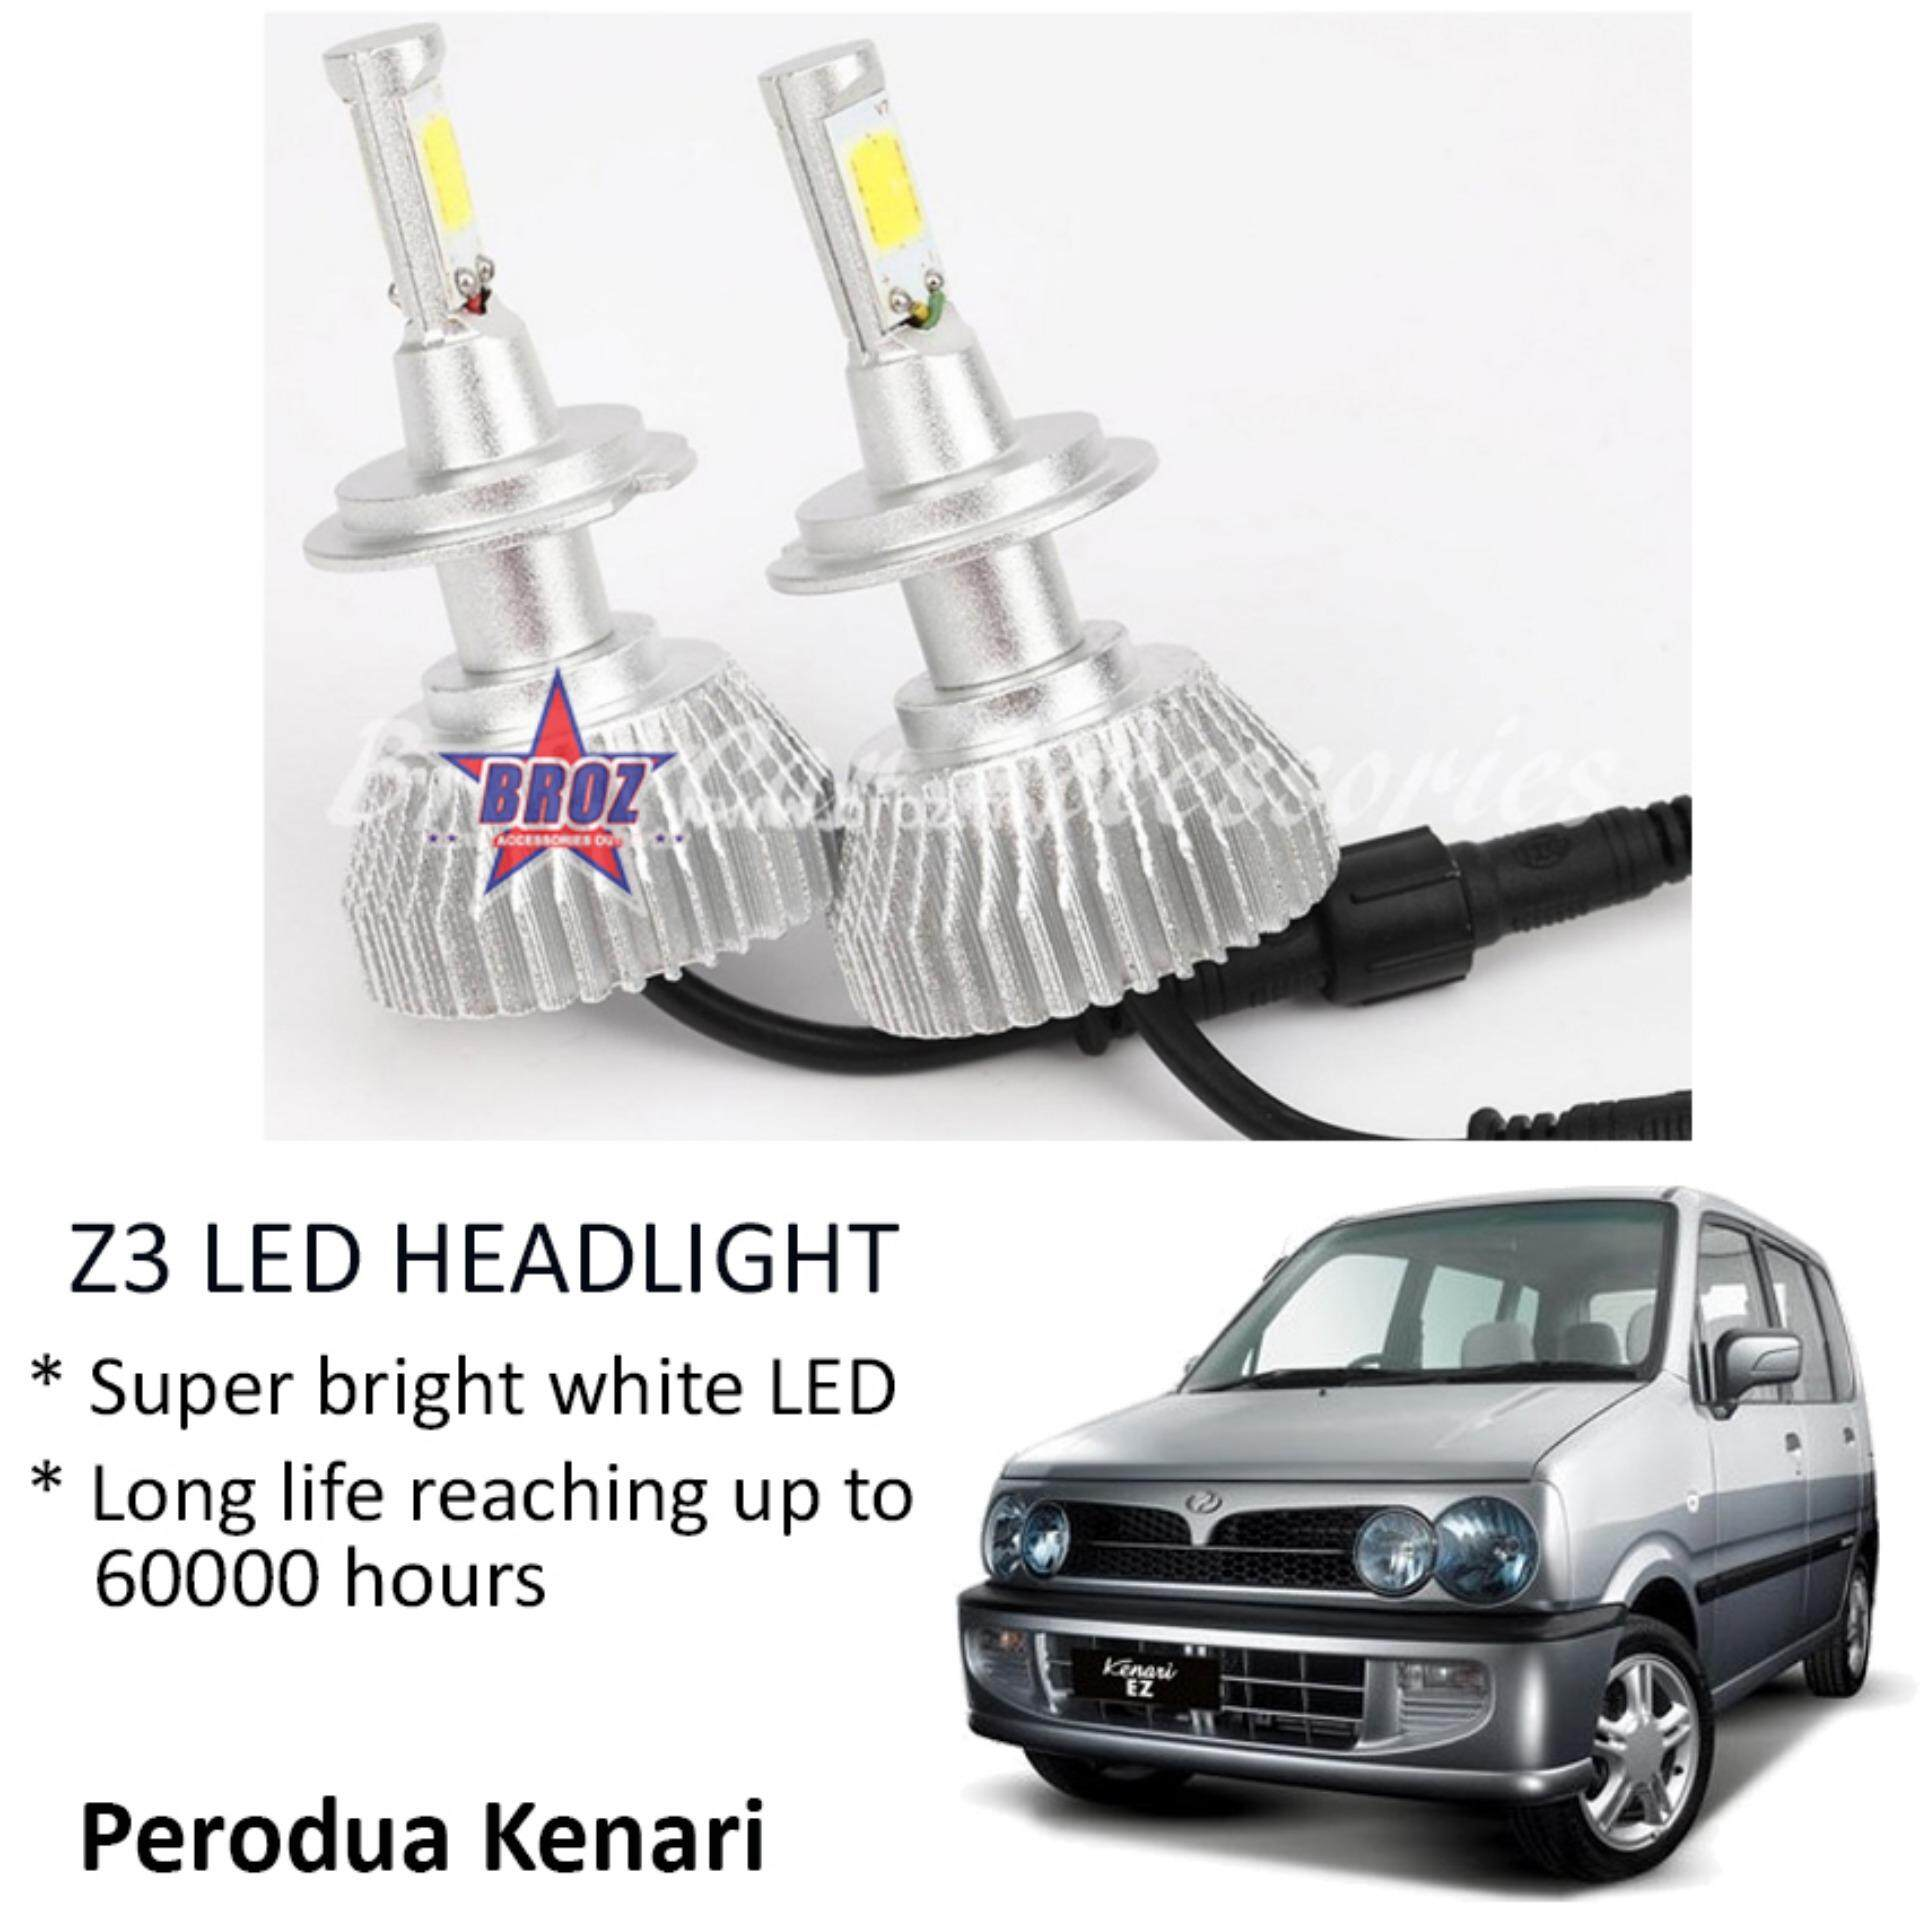 Perodua Kenari (Head Lamp) Z3 LED Light Car Headlight Auto Head light Lamp 6000k White Light